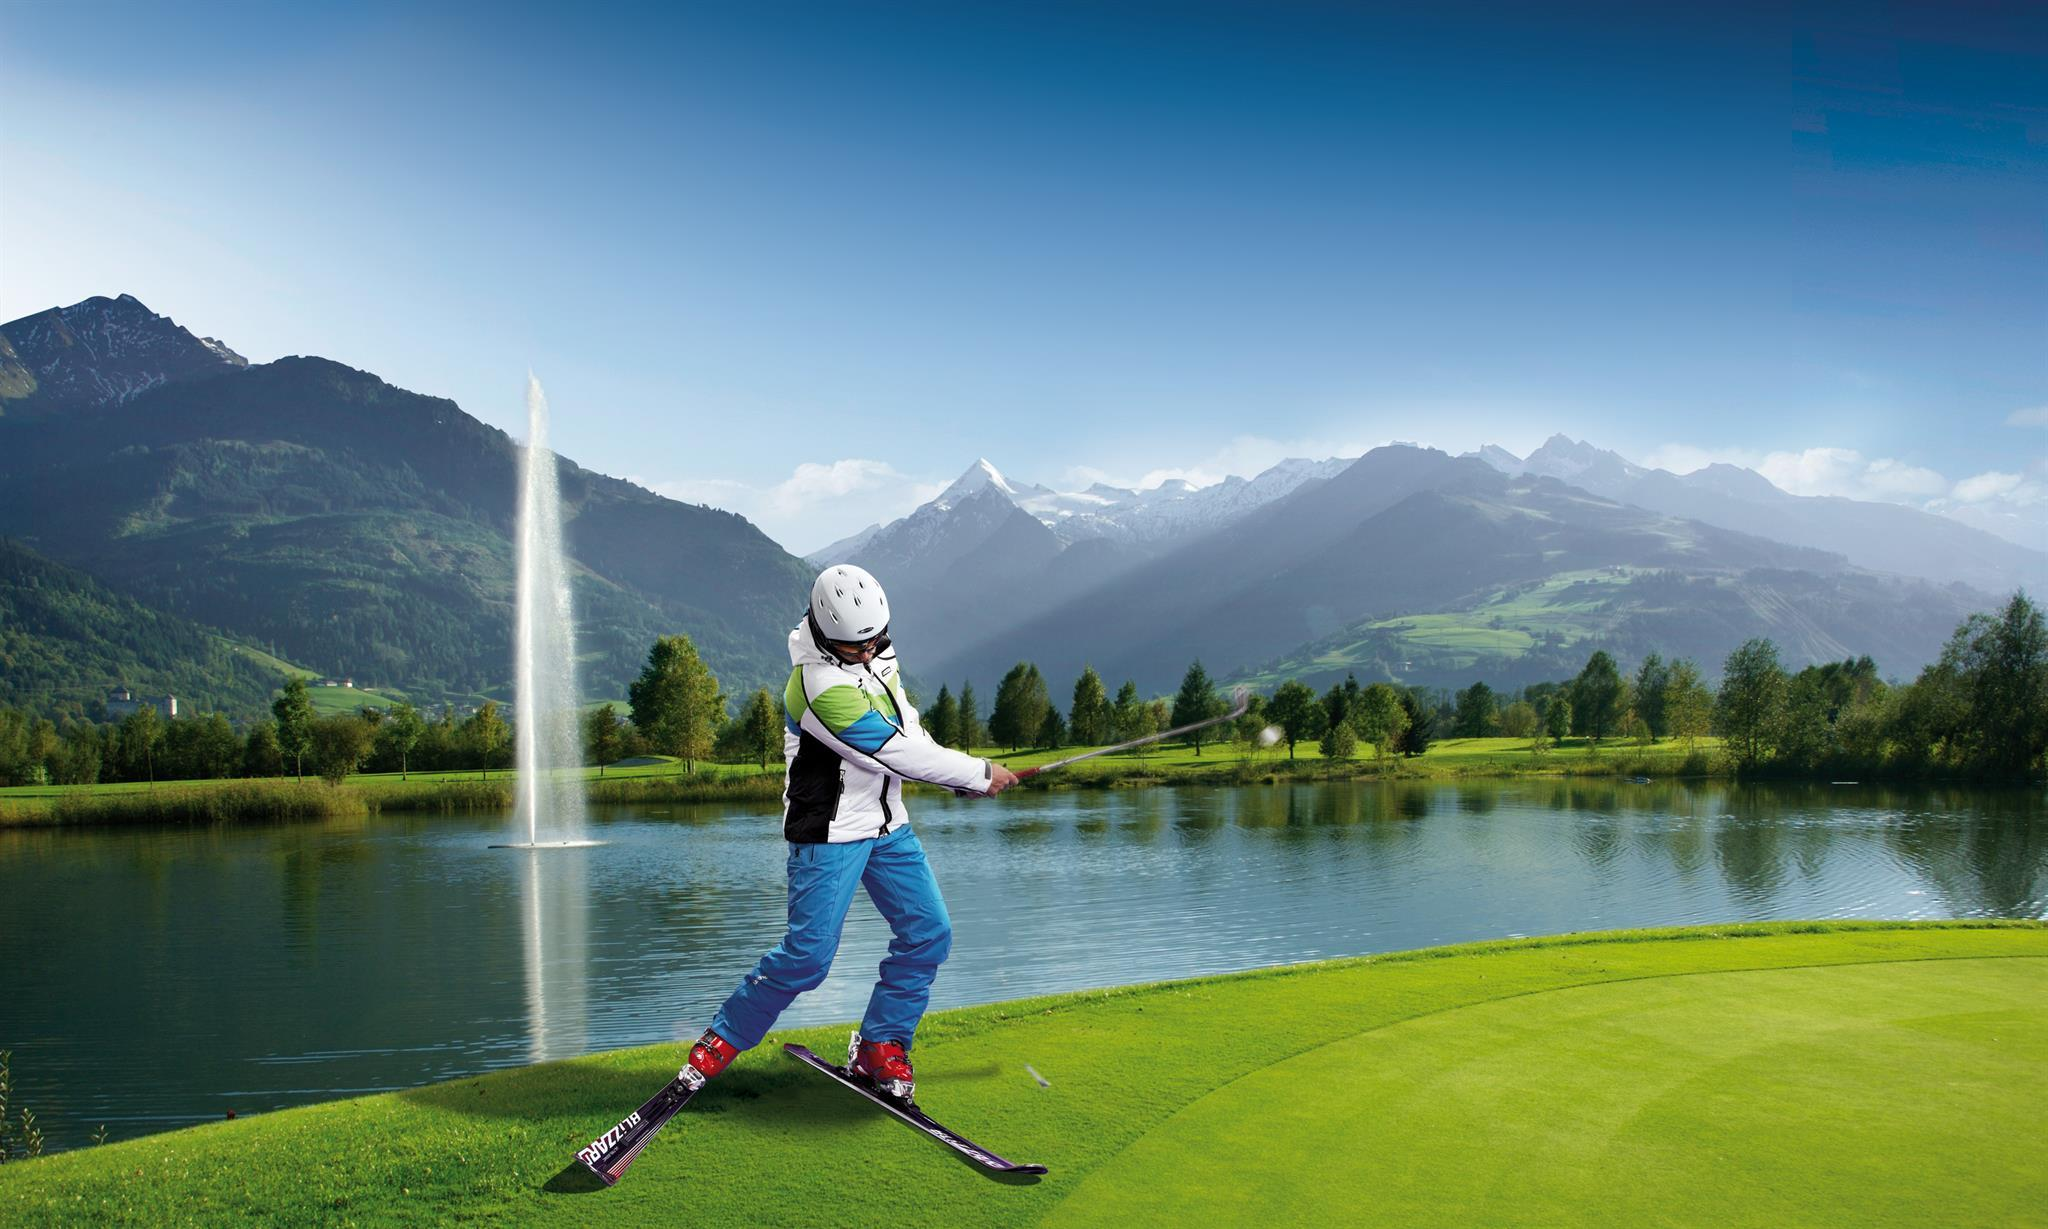 Ski & Golf World Championship 2020 - 23.05.2020